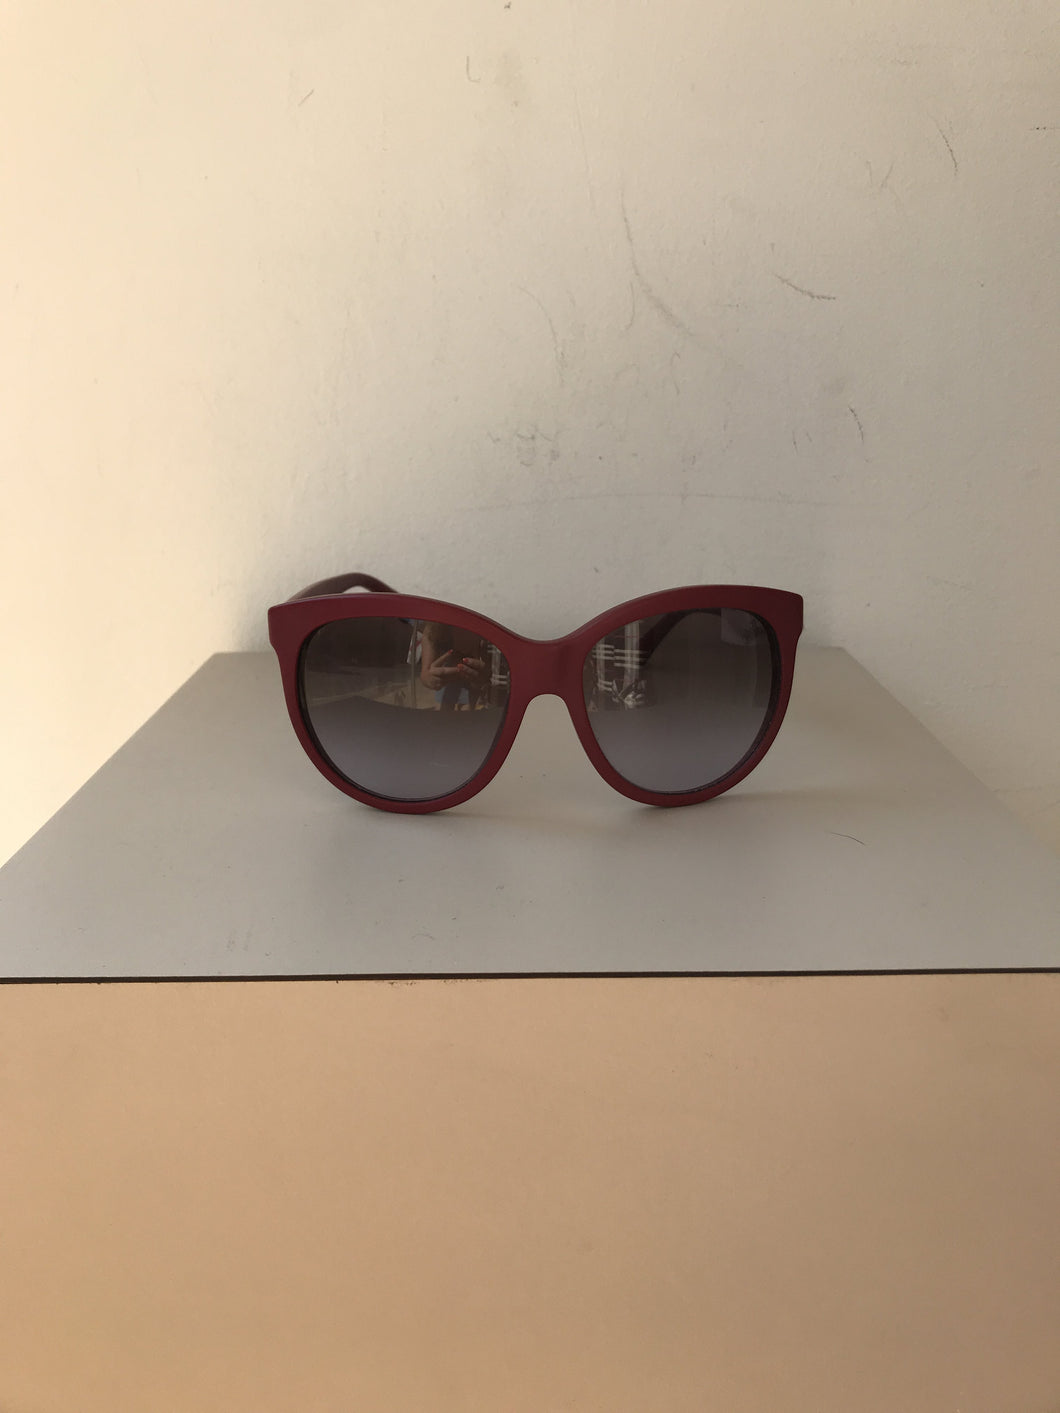 Dolce & Gabbana red sunglasses - My Girlfriend's Wardrobe York Pa